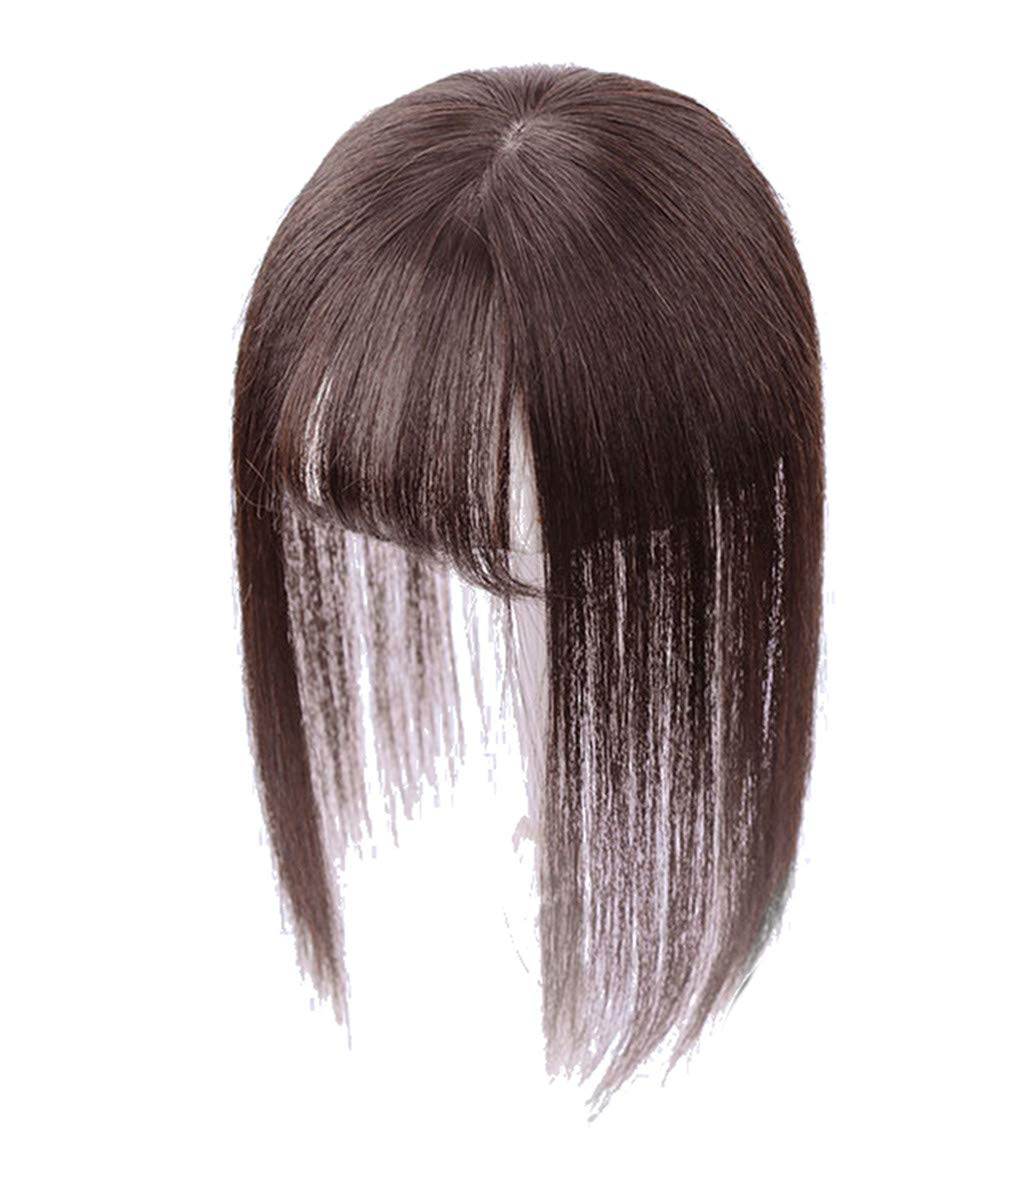 """3"""" x 4.3"""" Crown Topper Human Hair for Women with 3D Air Bangs, Clip in Hair Toppers for Thinning Hair 7"""